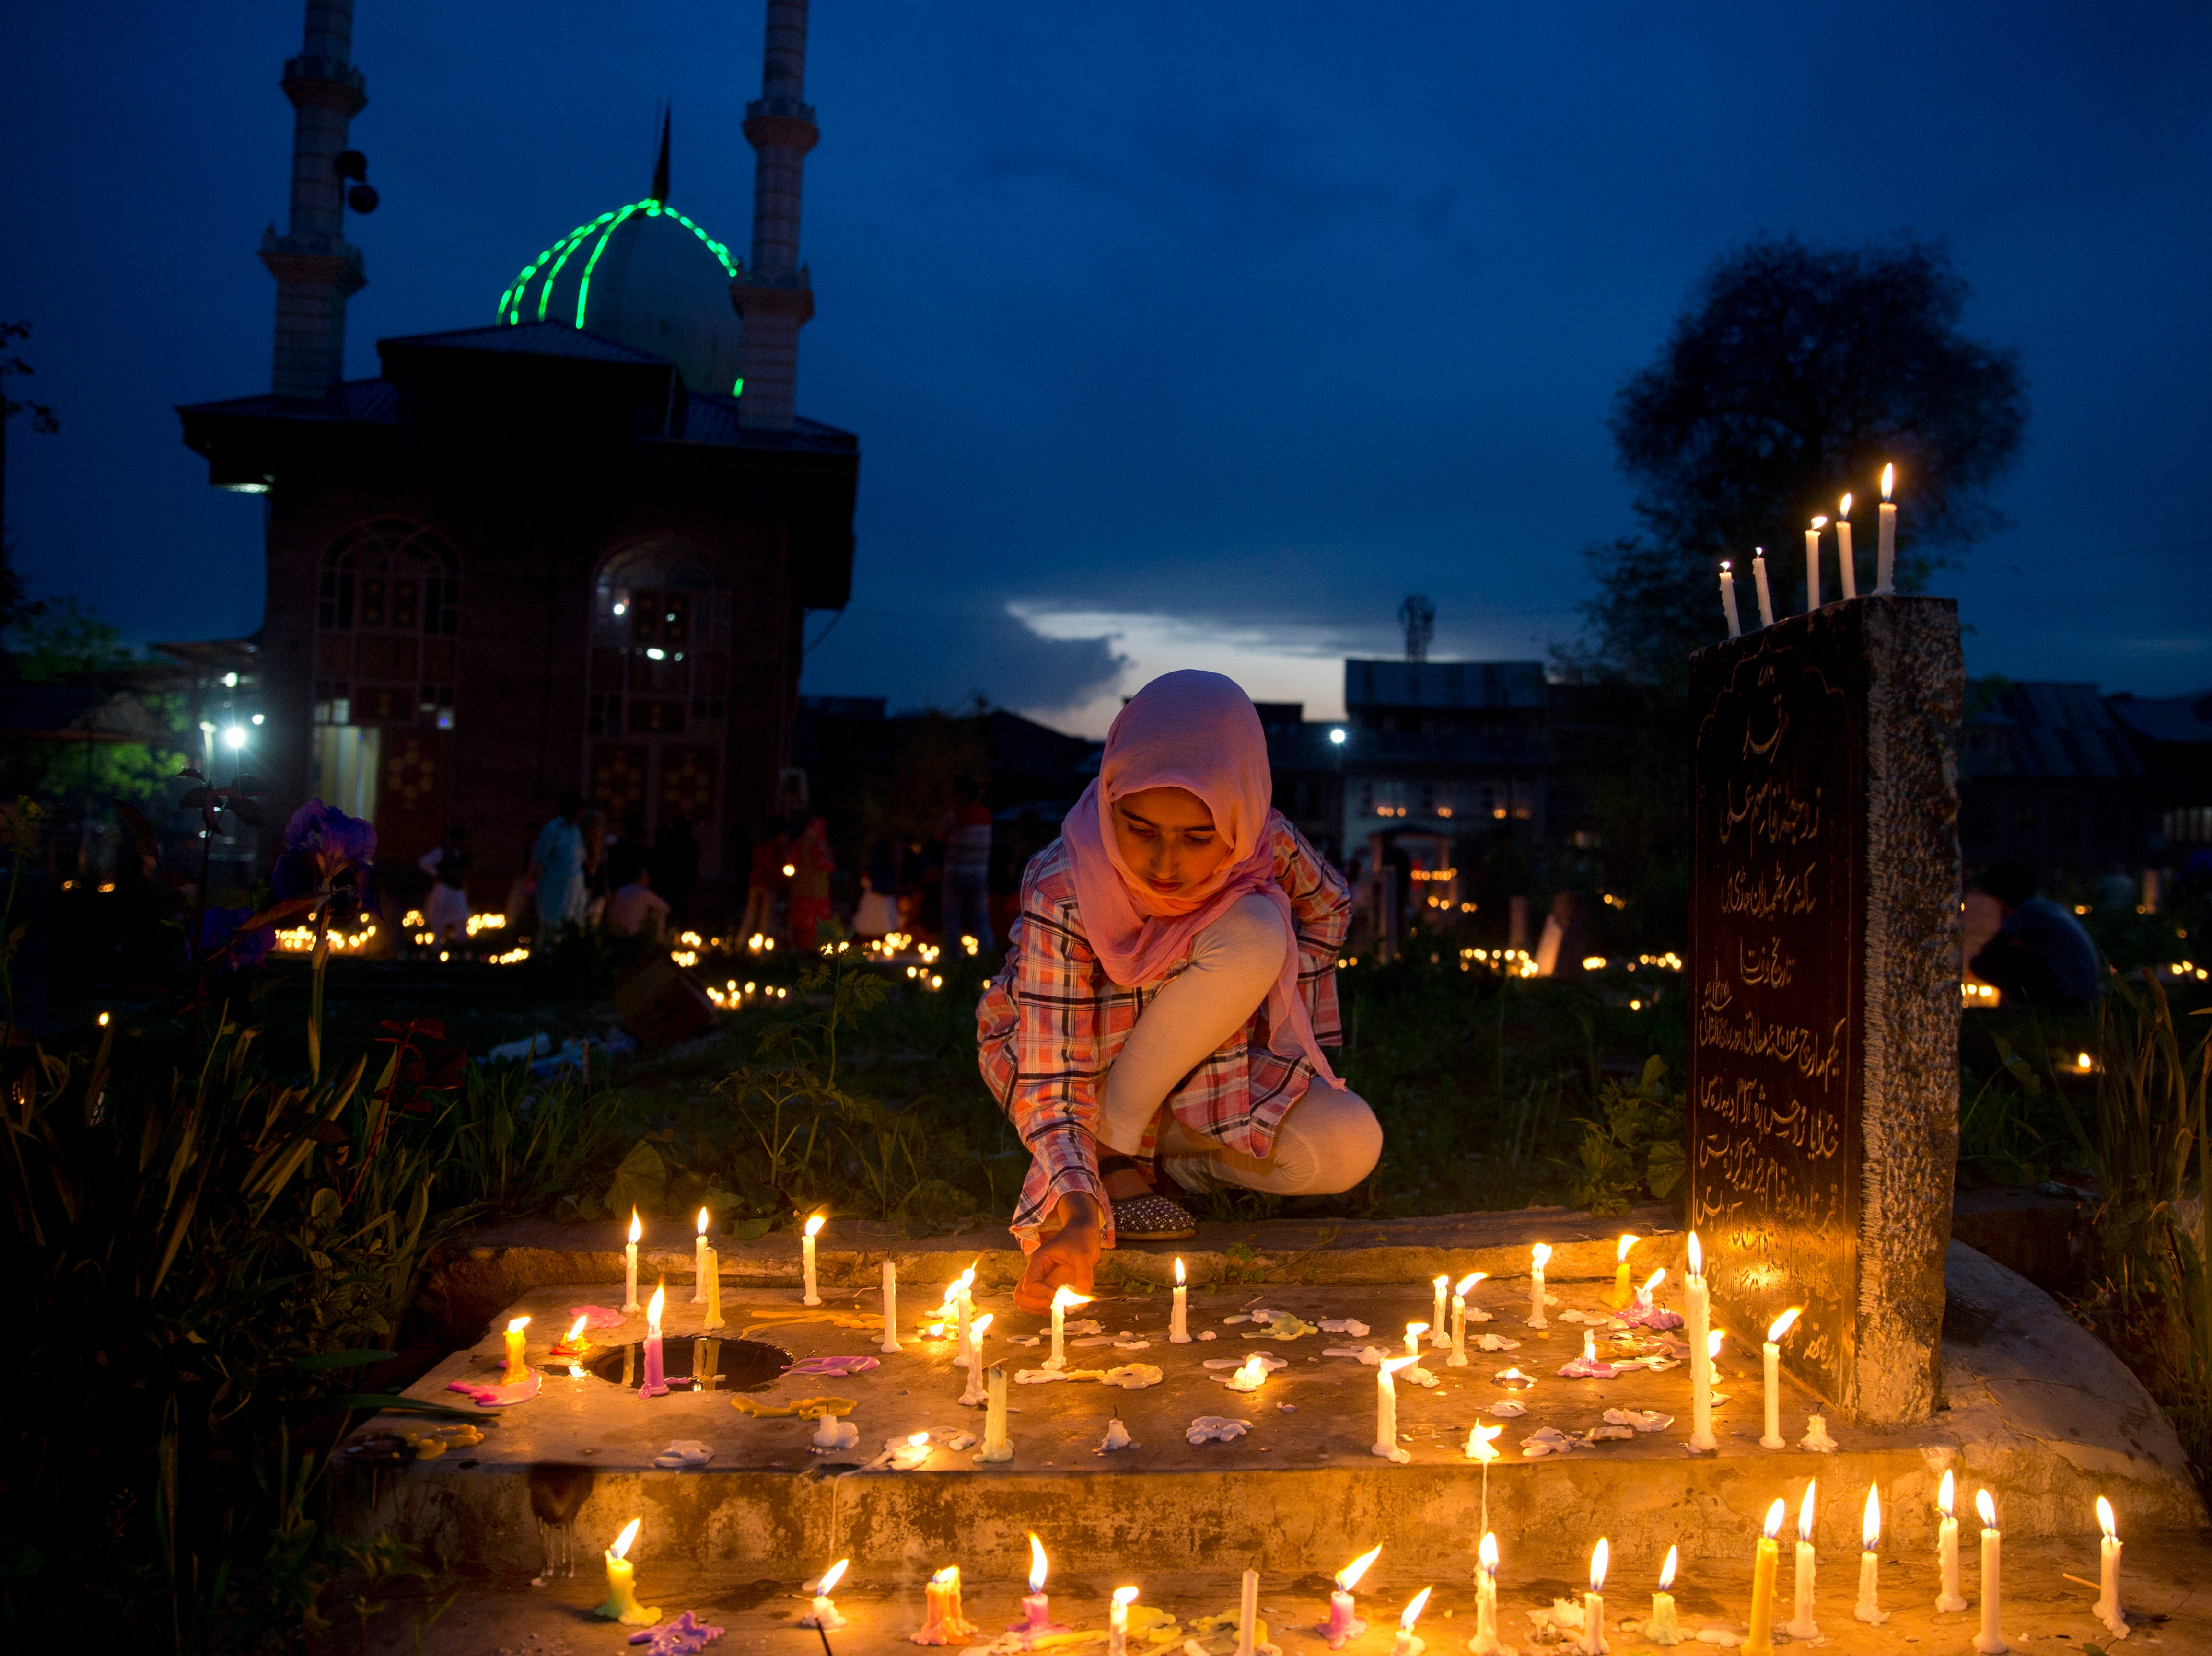 A Kashmiri Shiite Muslim girl light candles on the grave of her relative to mark Shab-e-Barat, on the outskirts of Srinagar, Indian controlled Kashmir, Saturday, April 20, 2019. Muslims visit ancestral graveyards for the salvation of the souls of the departed and also believe that all sins will be forgiven by praying to Allah throughout the Shab-e Barat night.